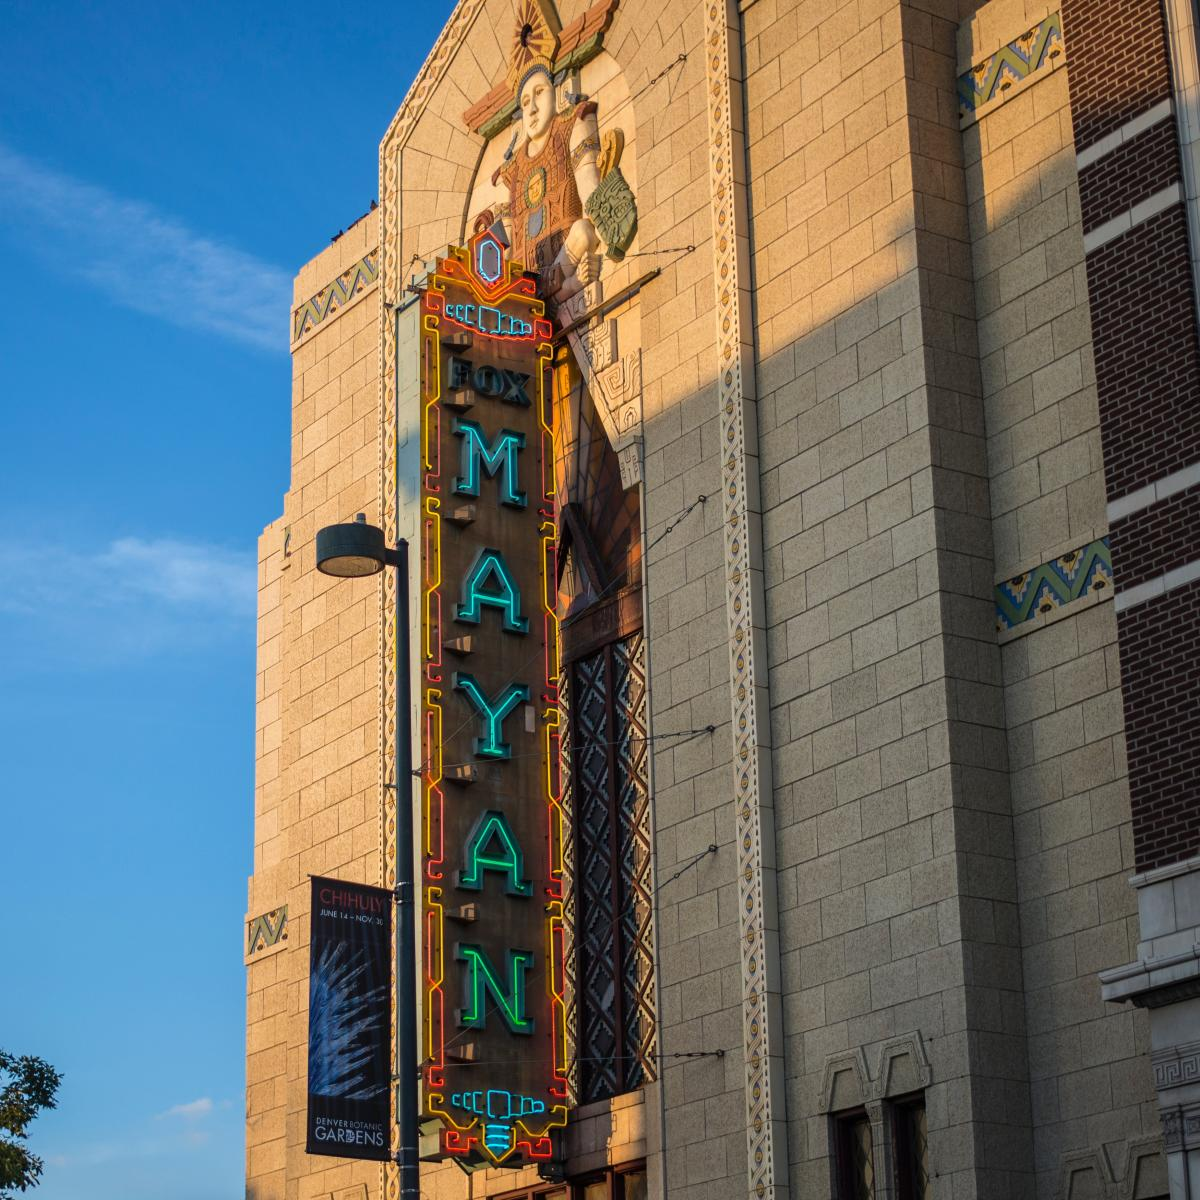 Exterior shot of the Mayan Theater